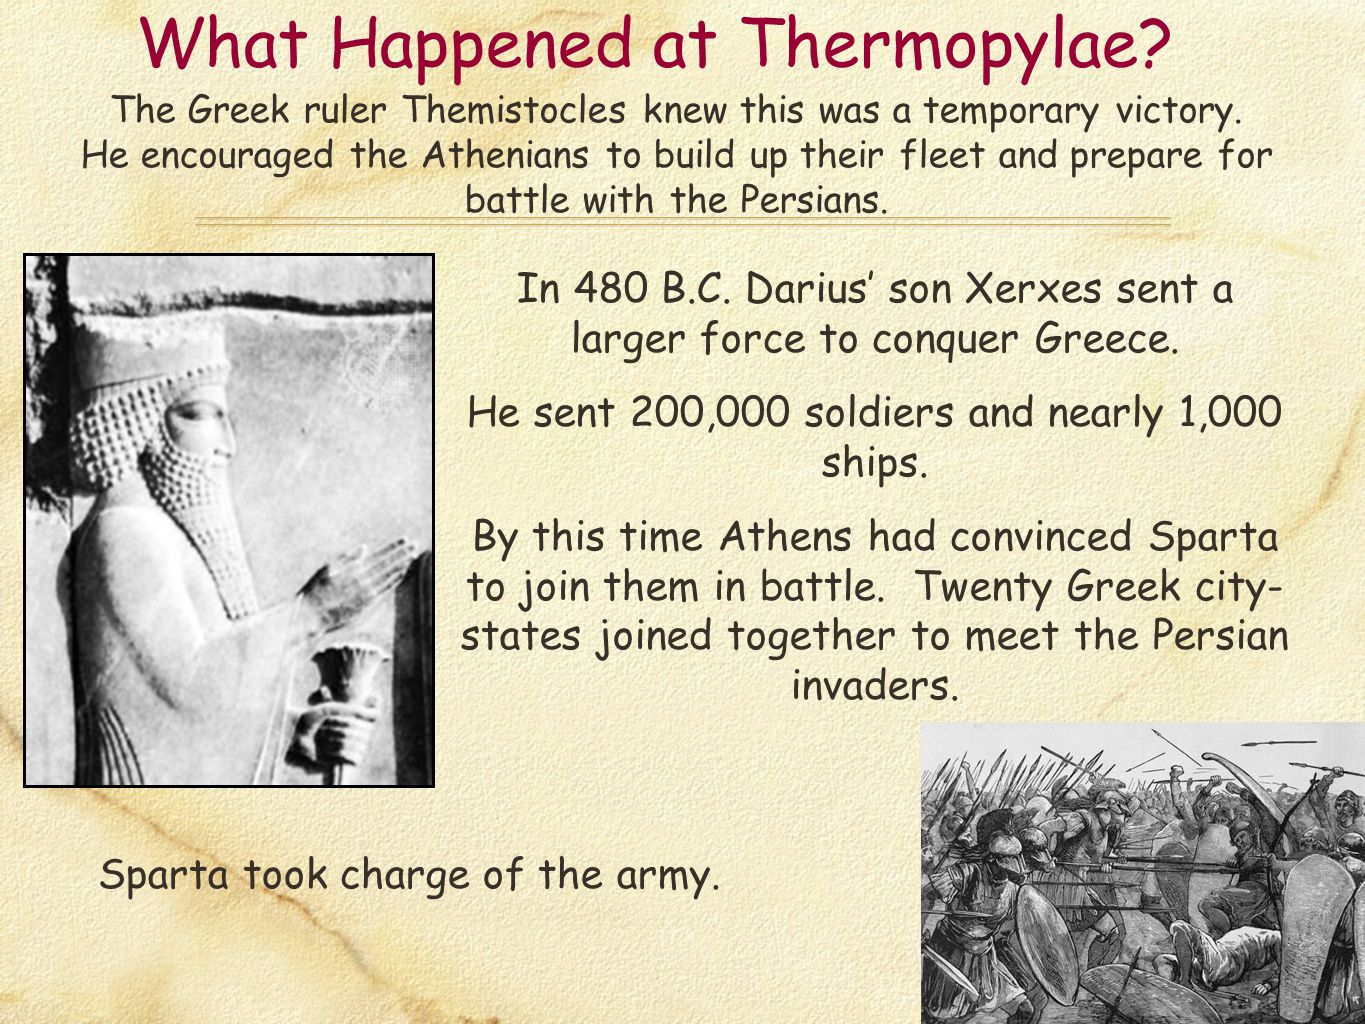 What Happened at Thermopylae? The Greek ruler Themistocles knew this was a temporary victory. He encouraged the Athenians to build up their fleet and